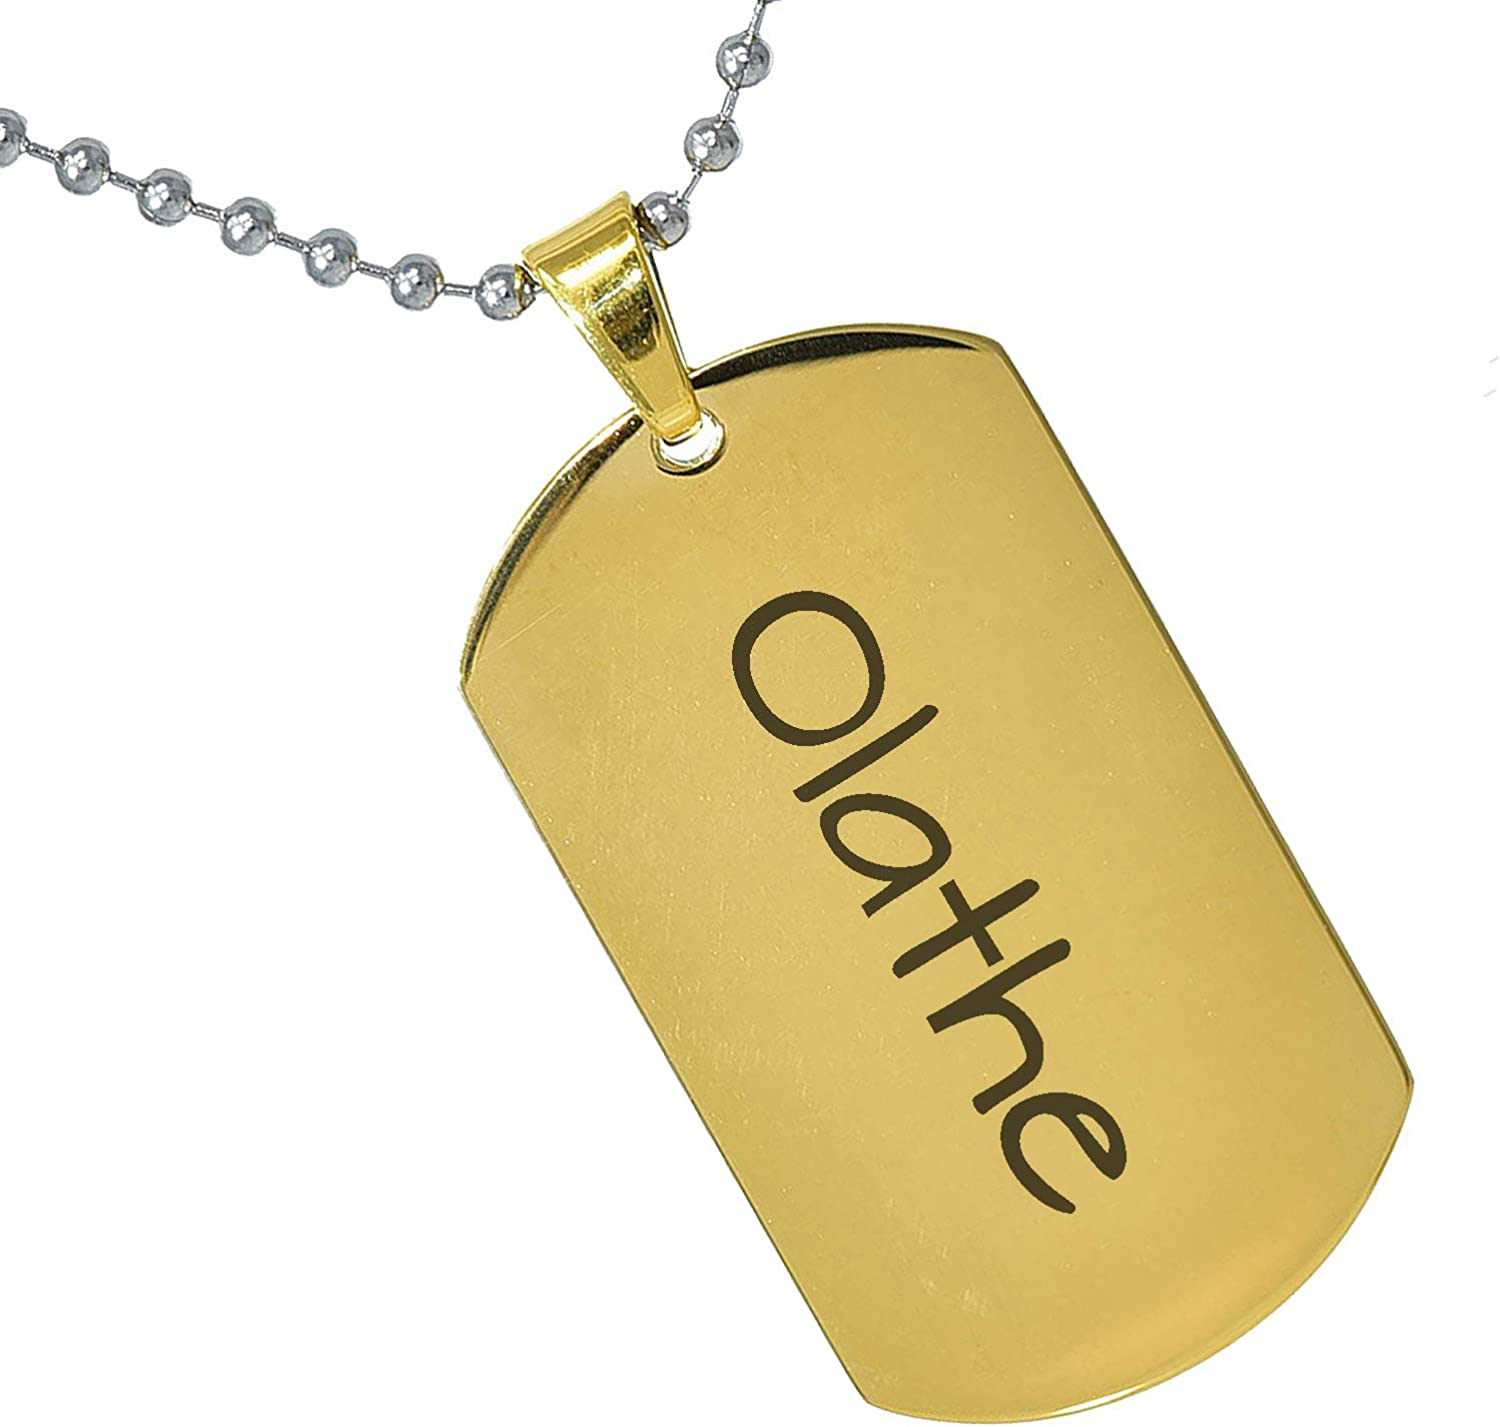 Stainless Steel Silver Gold Black Rose Gold Color Baby Name Olathe Engraved Personalized Gifts For Son Daughter Boyfriend Girlfriend Initial Customizable Pendant Necklace Dog Tags 24 Ball Chain